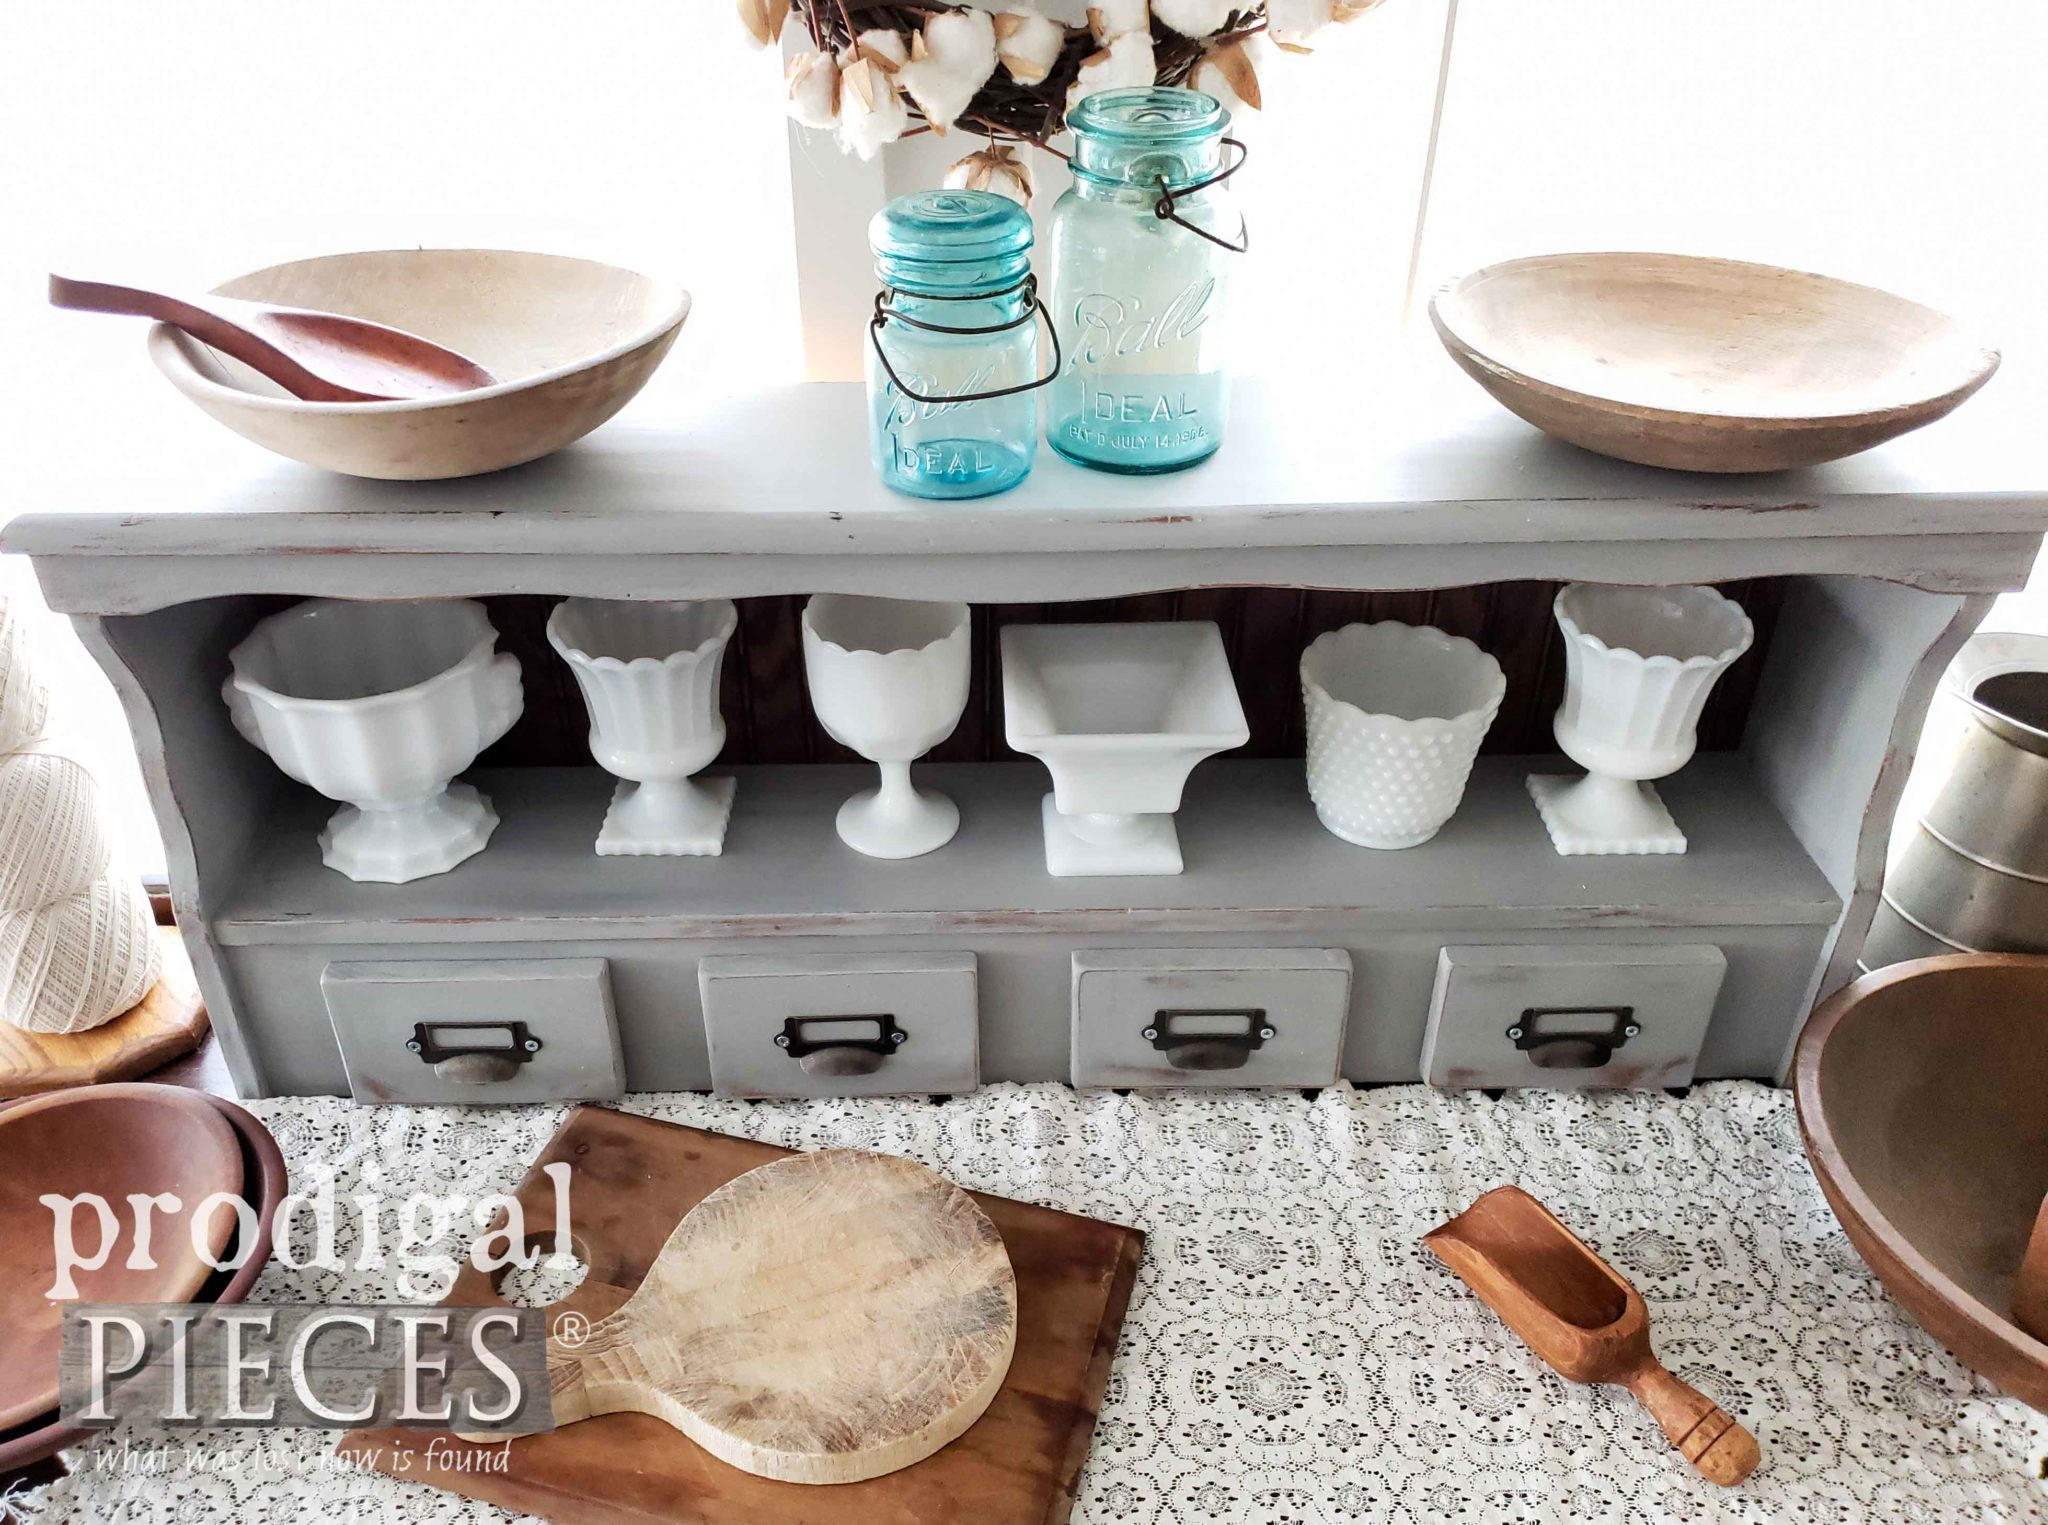 Rustic Farmhouse Kitchen with Upcycled Bookcase Headboard turned into Handmade Hutch by Larissa of Prodigal Pieces | prodigalpieces.com #prodigalpieces #homedecor #handmade #farmhouse #diy #vintage #home